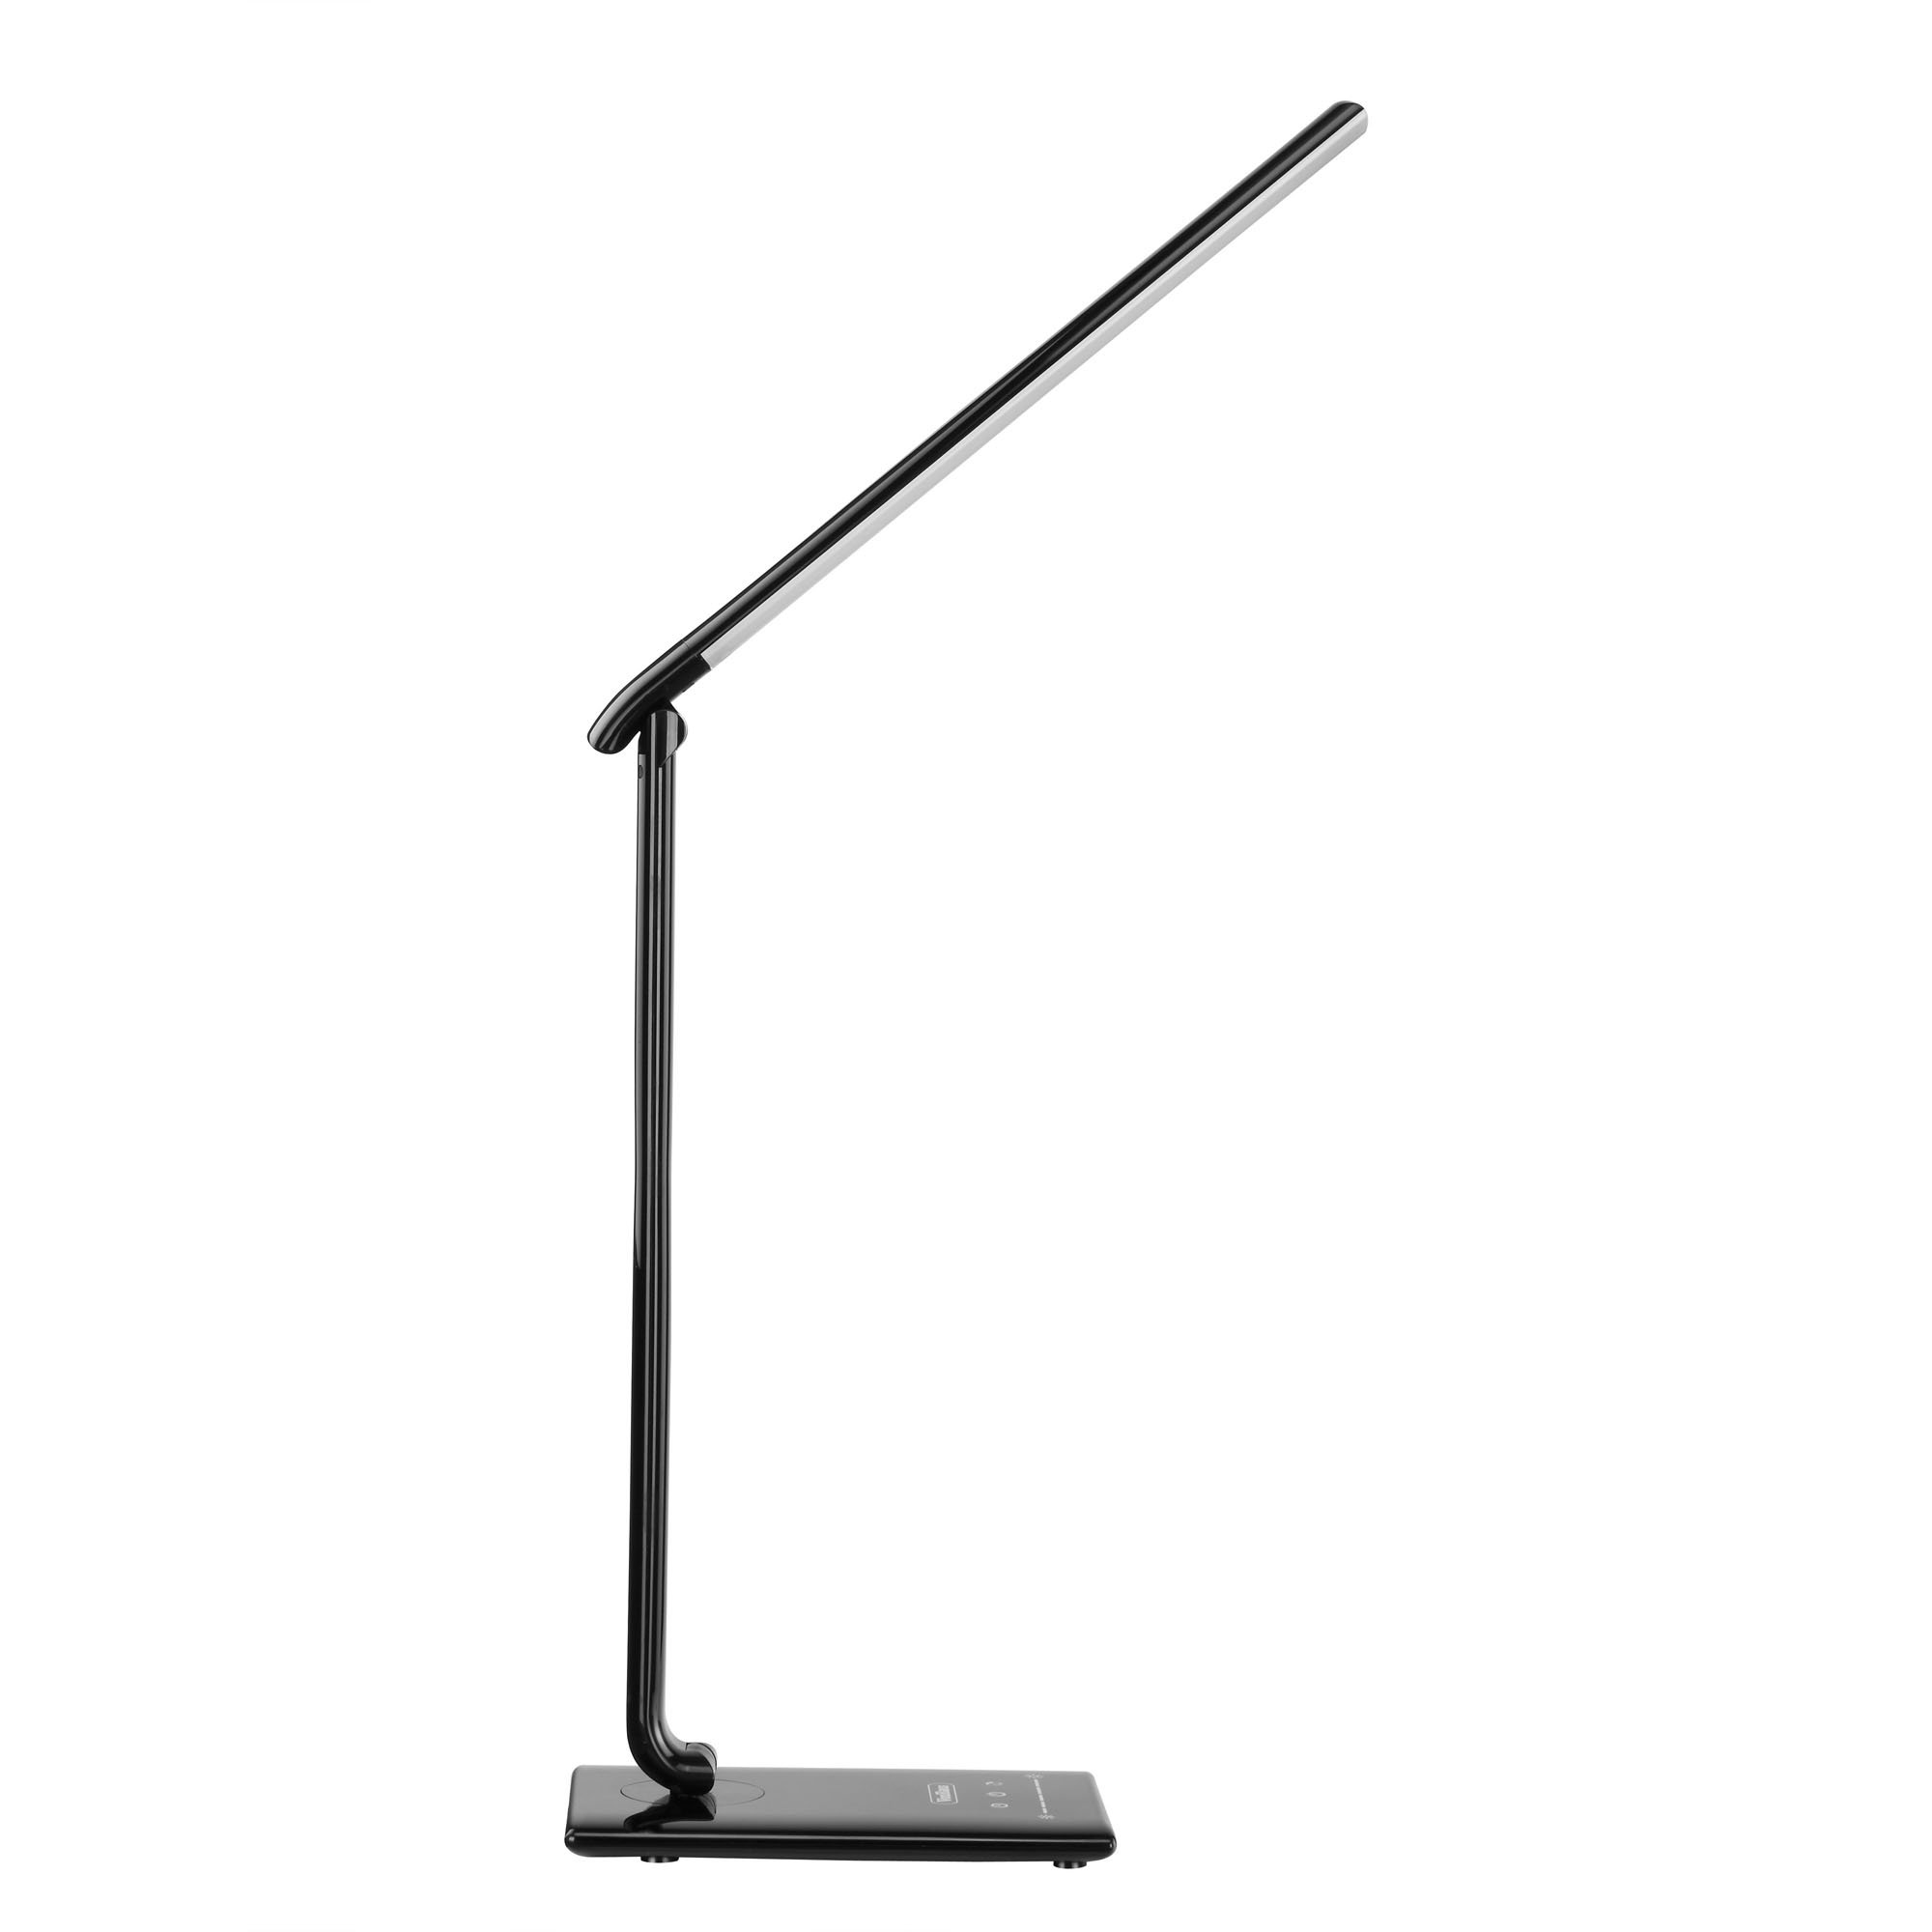 VonHaus Black Standing + Folding LED Desk Lamp with USB Charger, 7 Level Dimmer, Touch Control & Timer - College Student, Bedroom, Office, Hobby or Modern Table Lamp by VonHaus (Image #4)